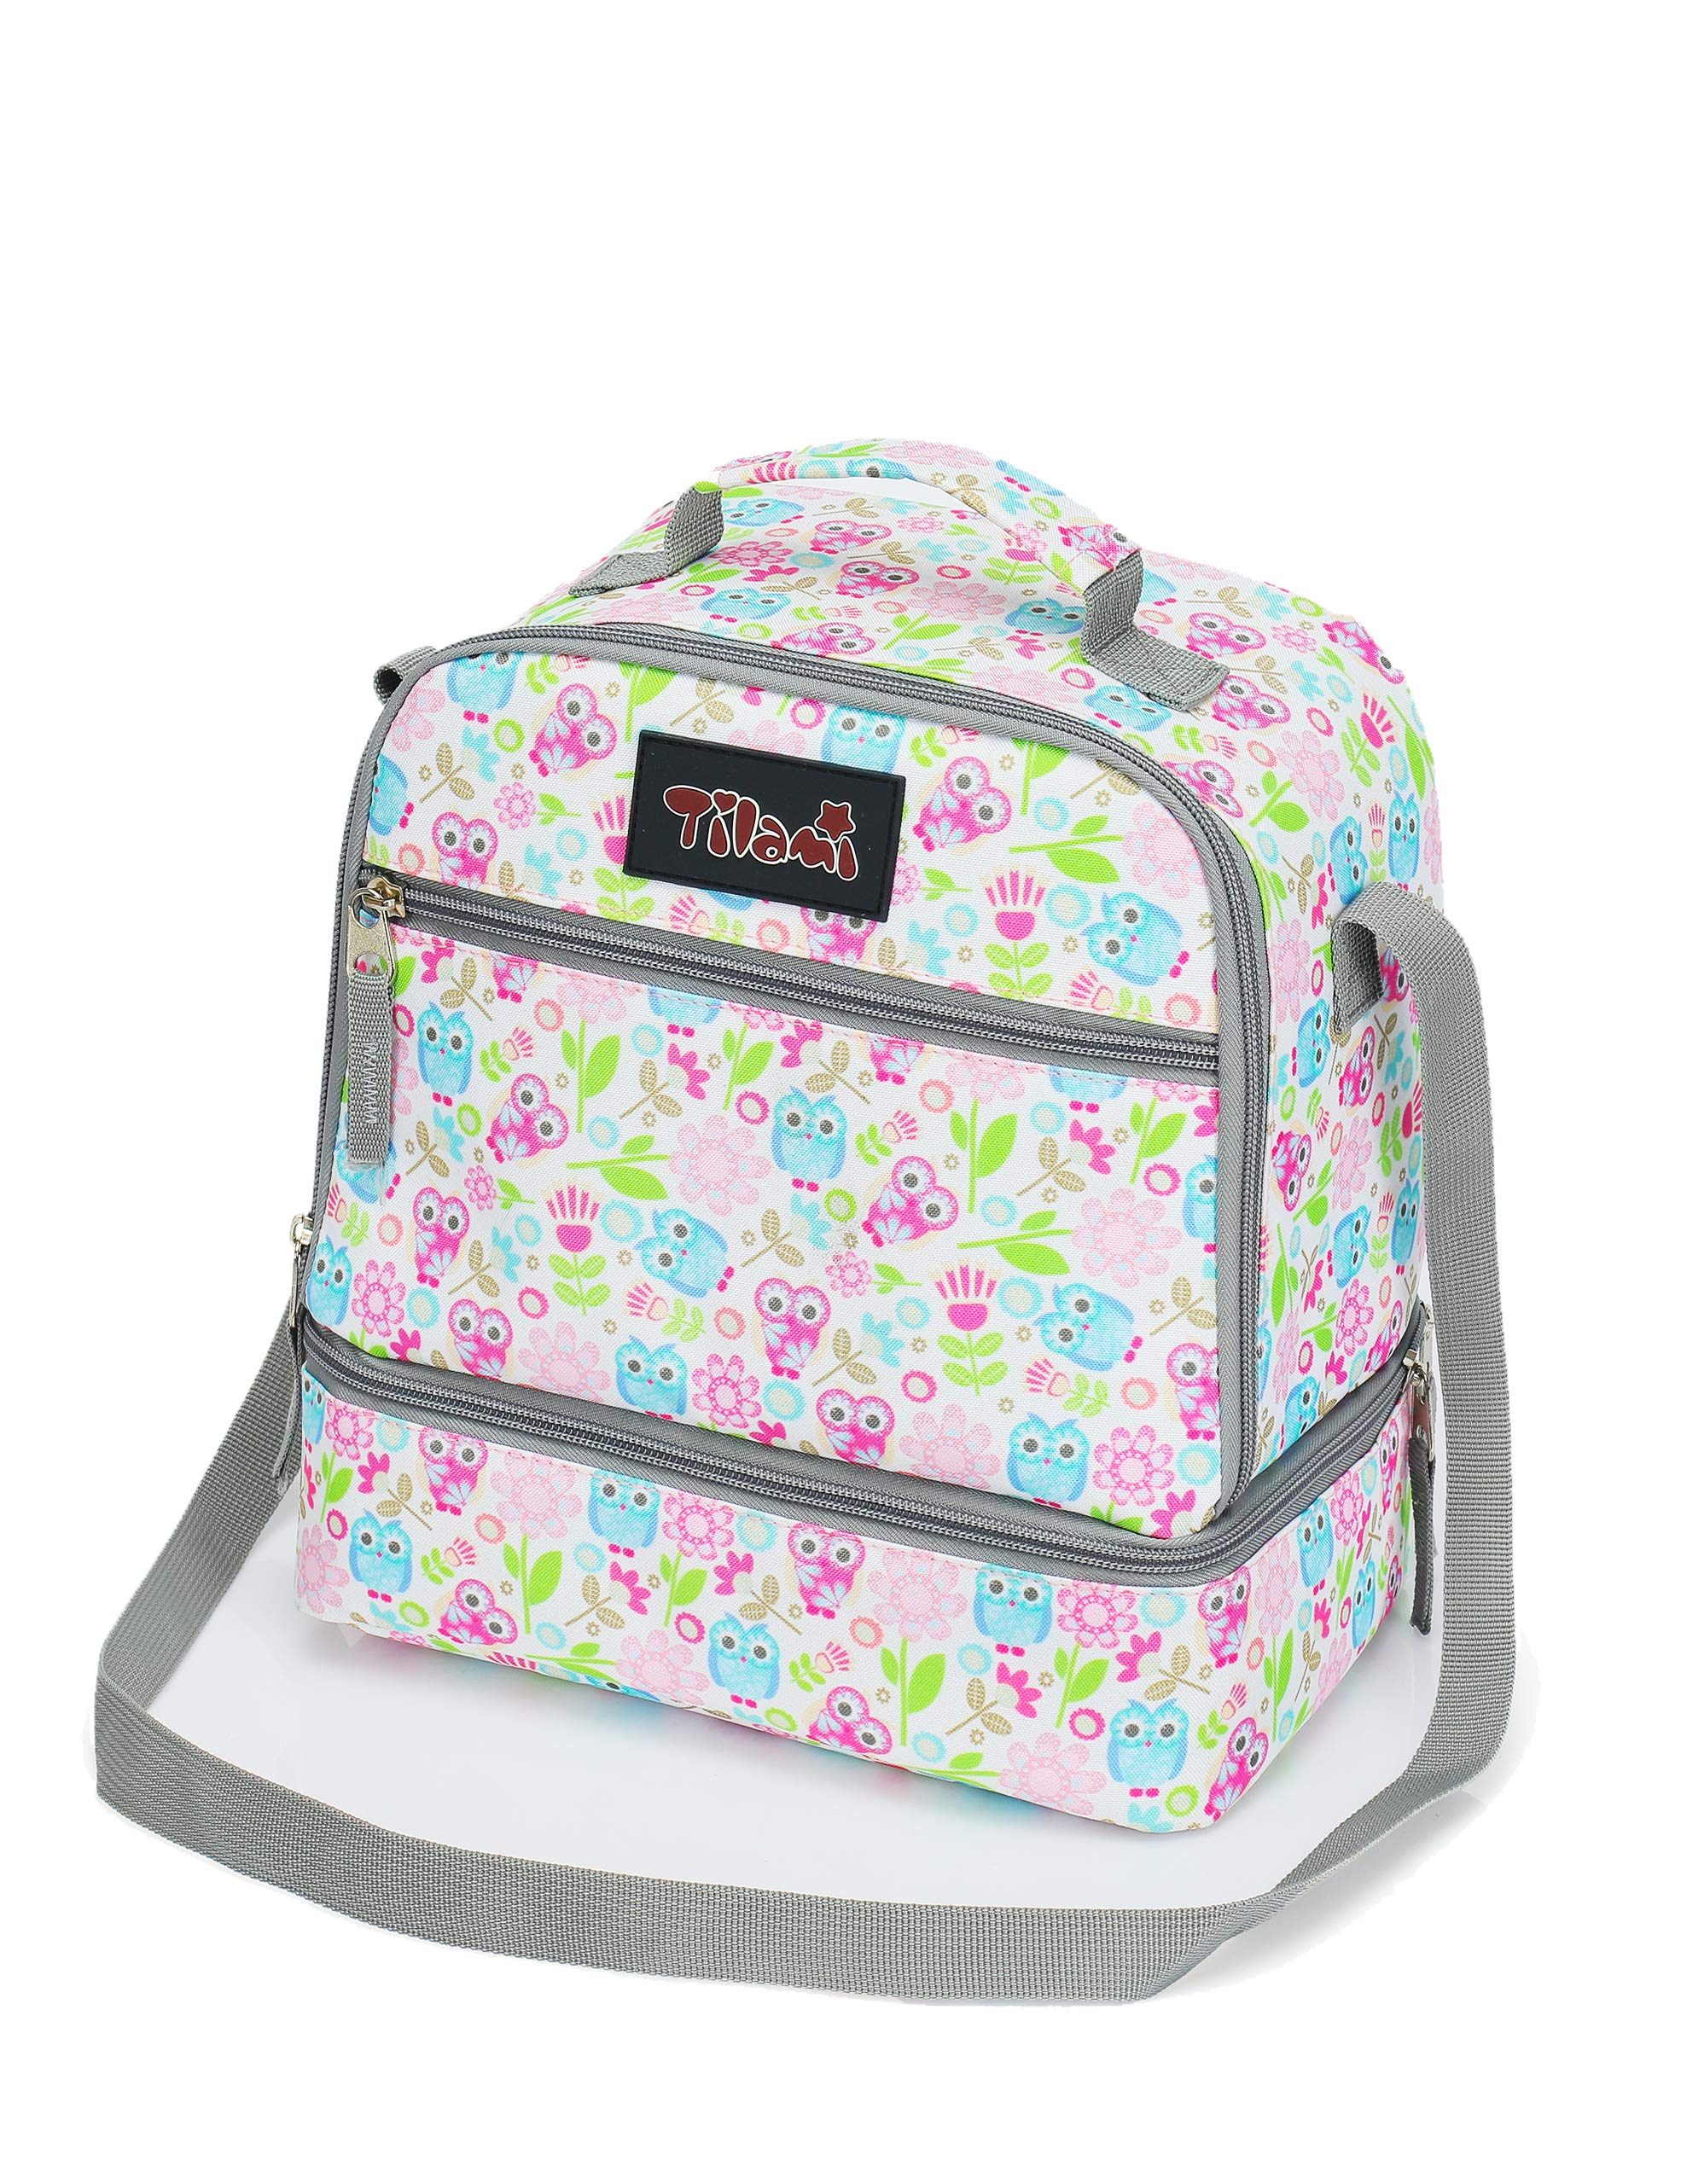 Tilami Lunch Bags Insulated Adjustable Strap Zipper, Two Compartments Cooler Bags, Bento Bags for Kids Toddlers, Owl